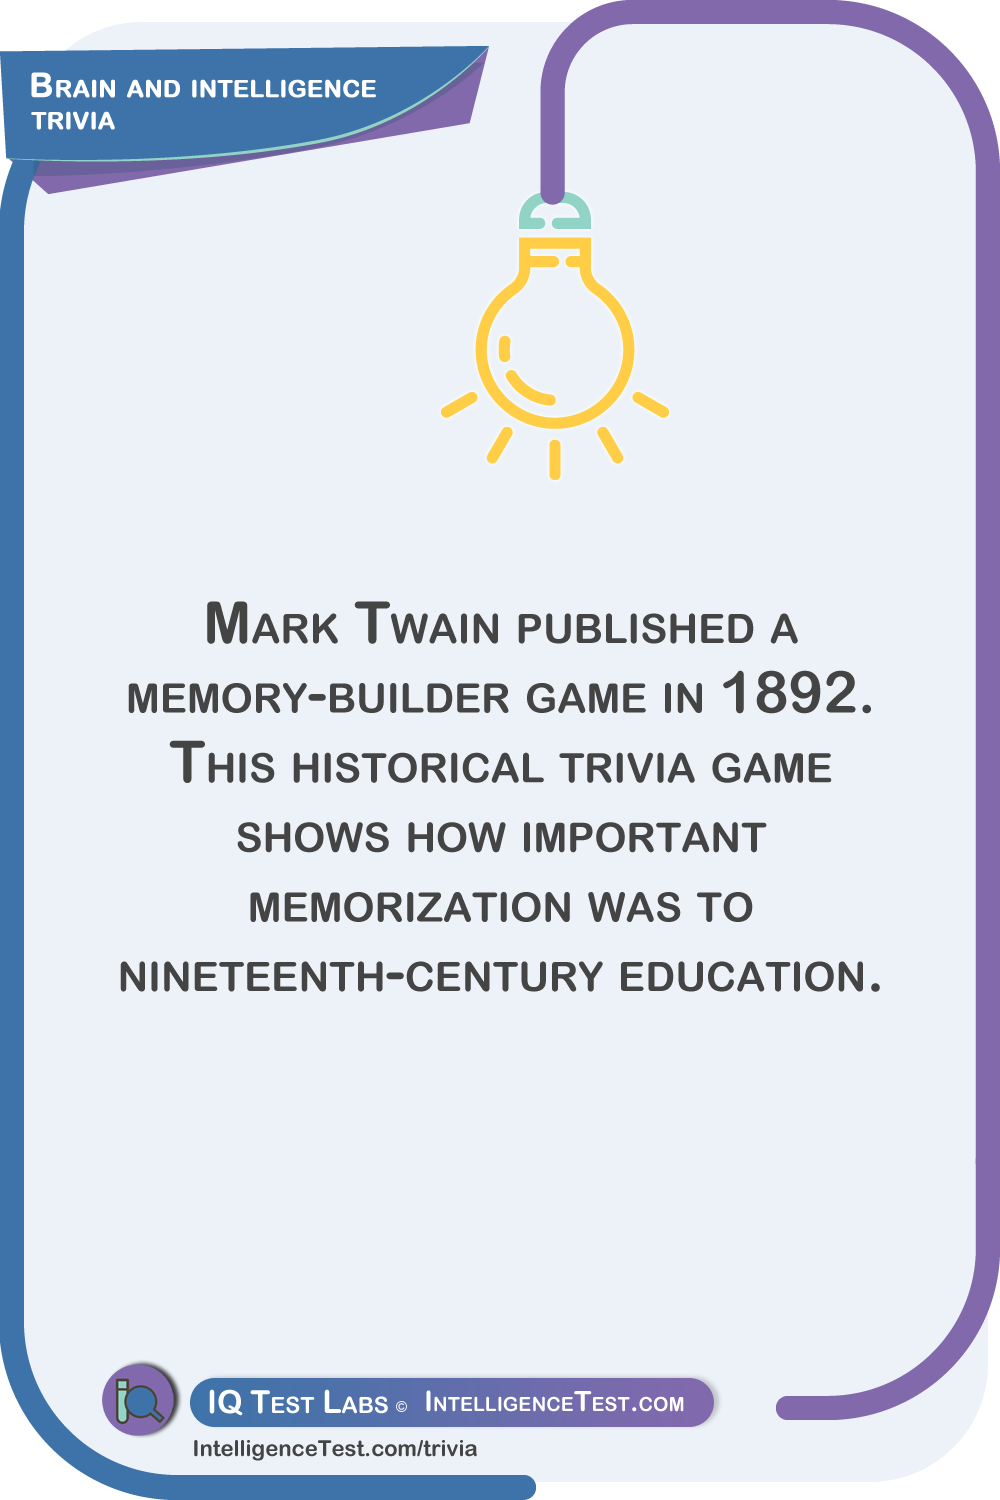 Mark Twain published a memory-builder game in 1892. This historical trivia game shows how important memorization was to nineteenth-century education.